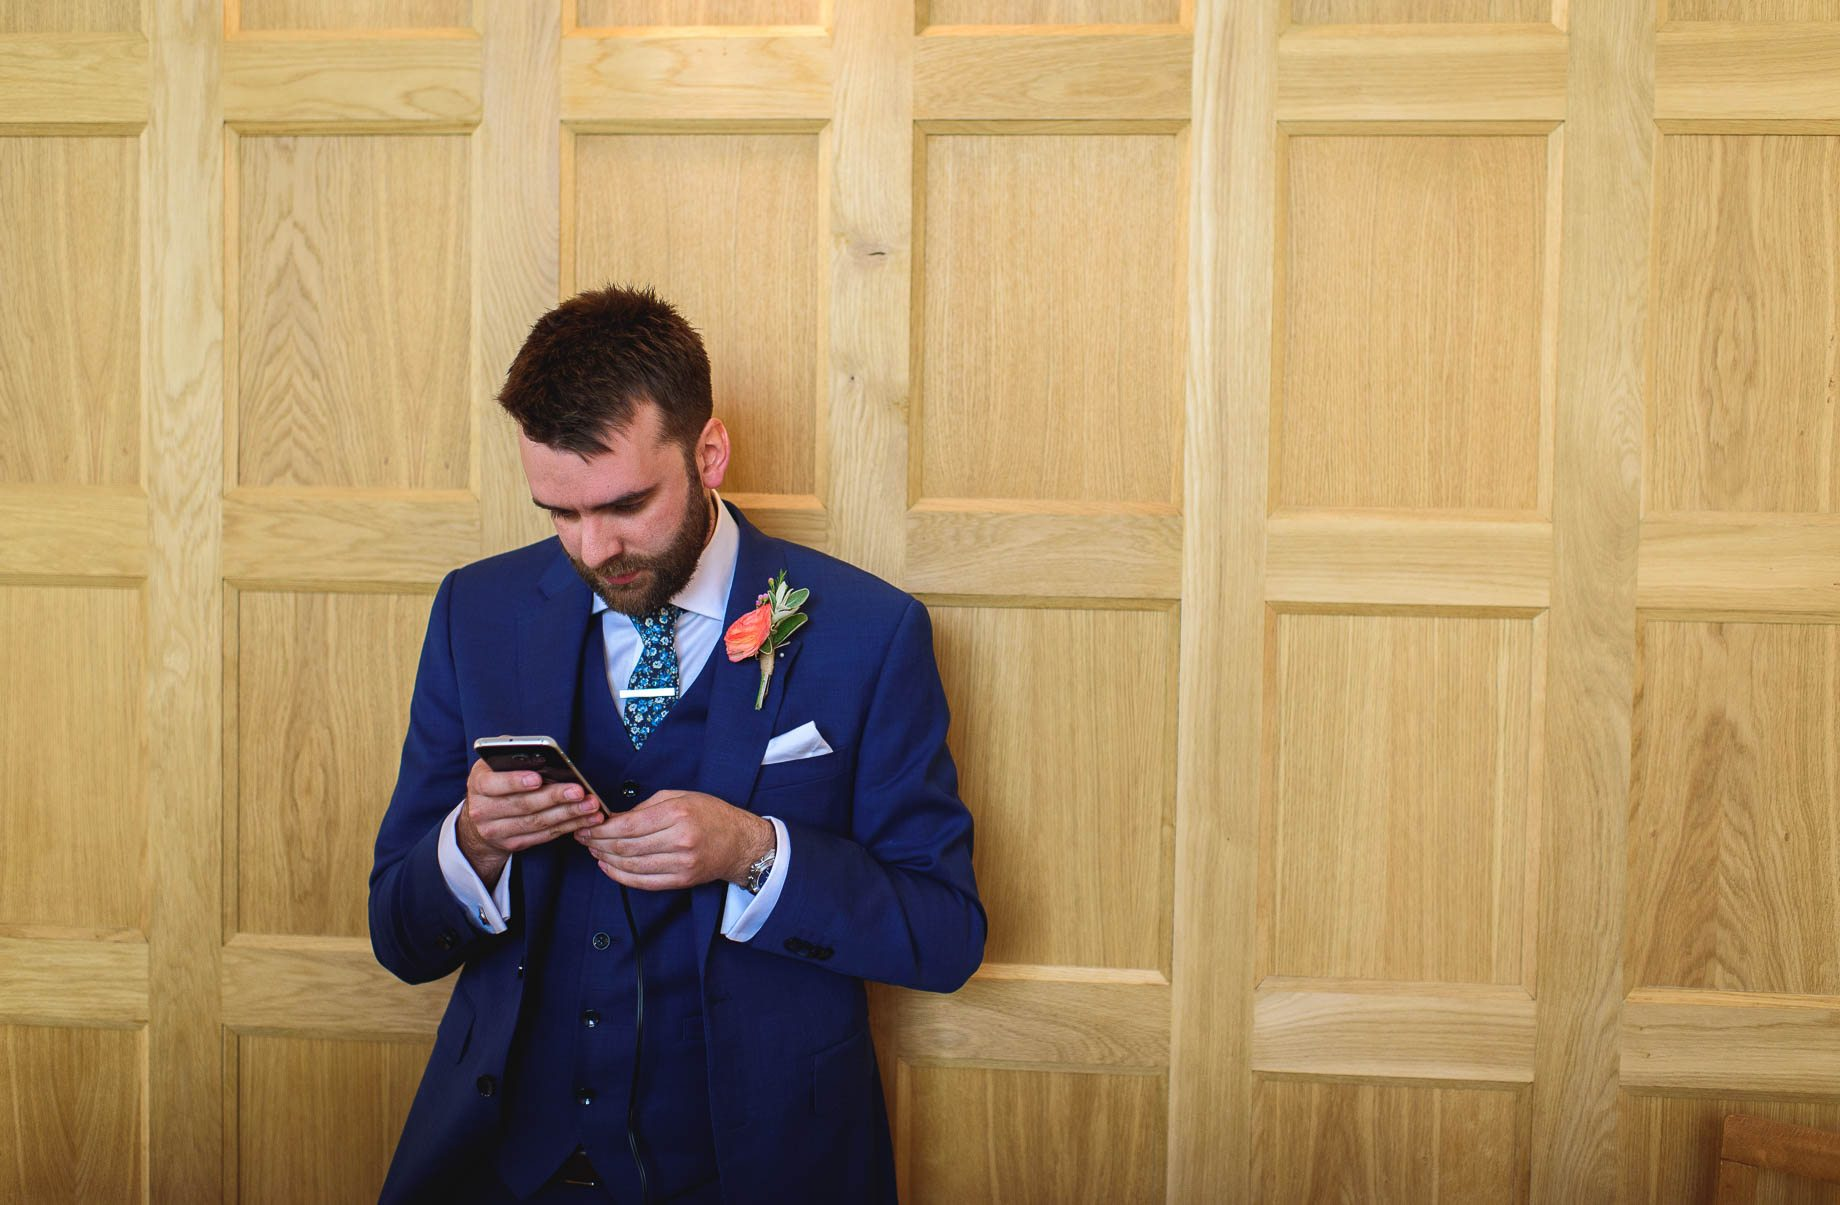 Rivervale Barn wedding photography by Guy Collier - Claire and Simon (43 of 133)